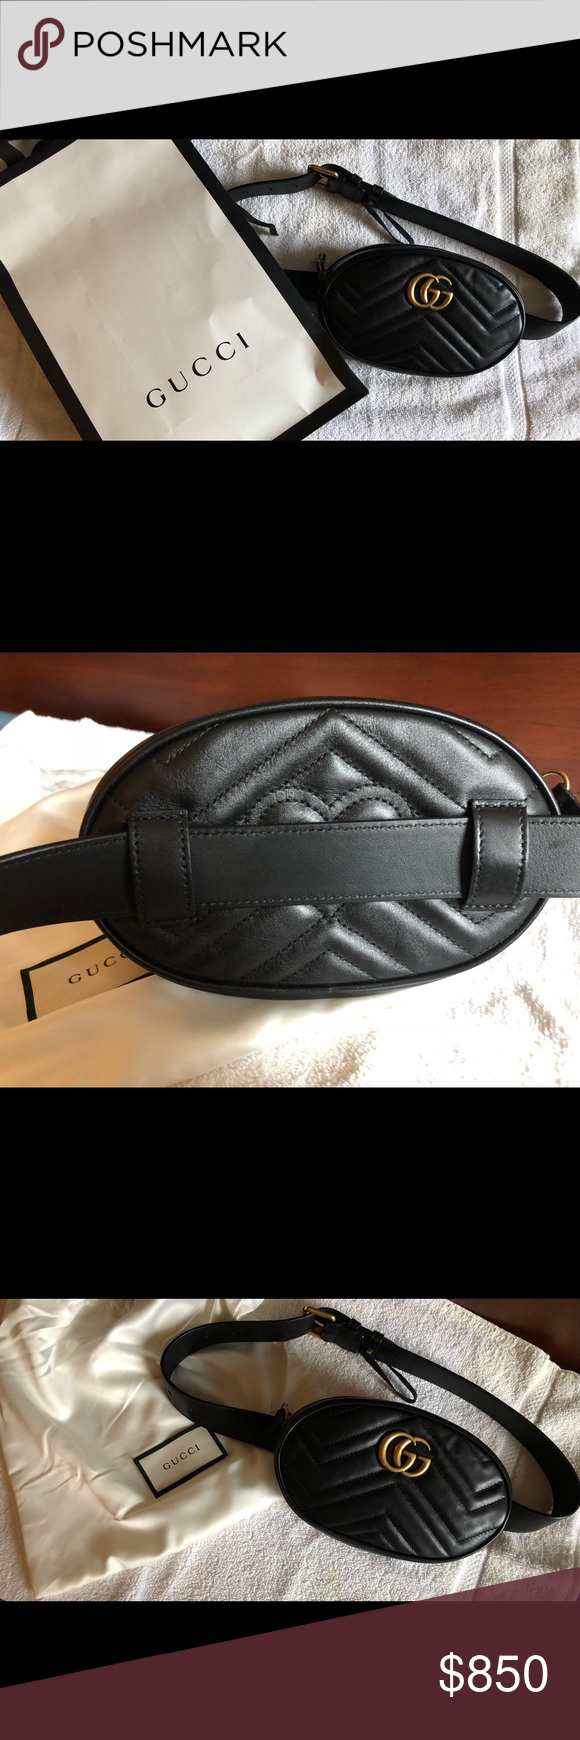 ef9a42a0aae Authentic new Gucci Marmont Matelassé belt bag Brand new barely used Fall  2017 Gucci belt bag. Black leather belt bag fanny pack. Perfect for  carrying cell ...